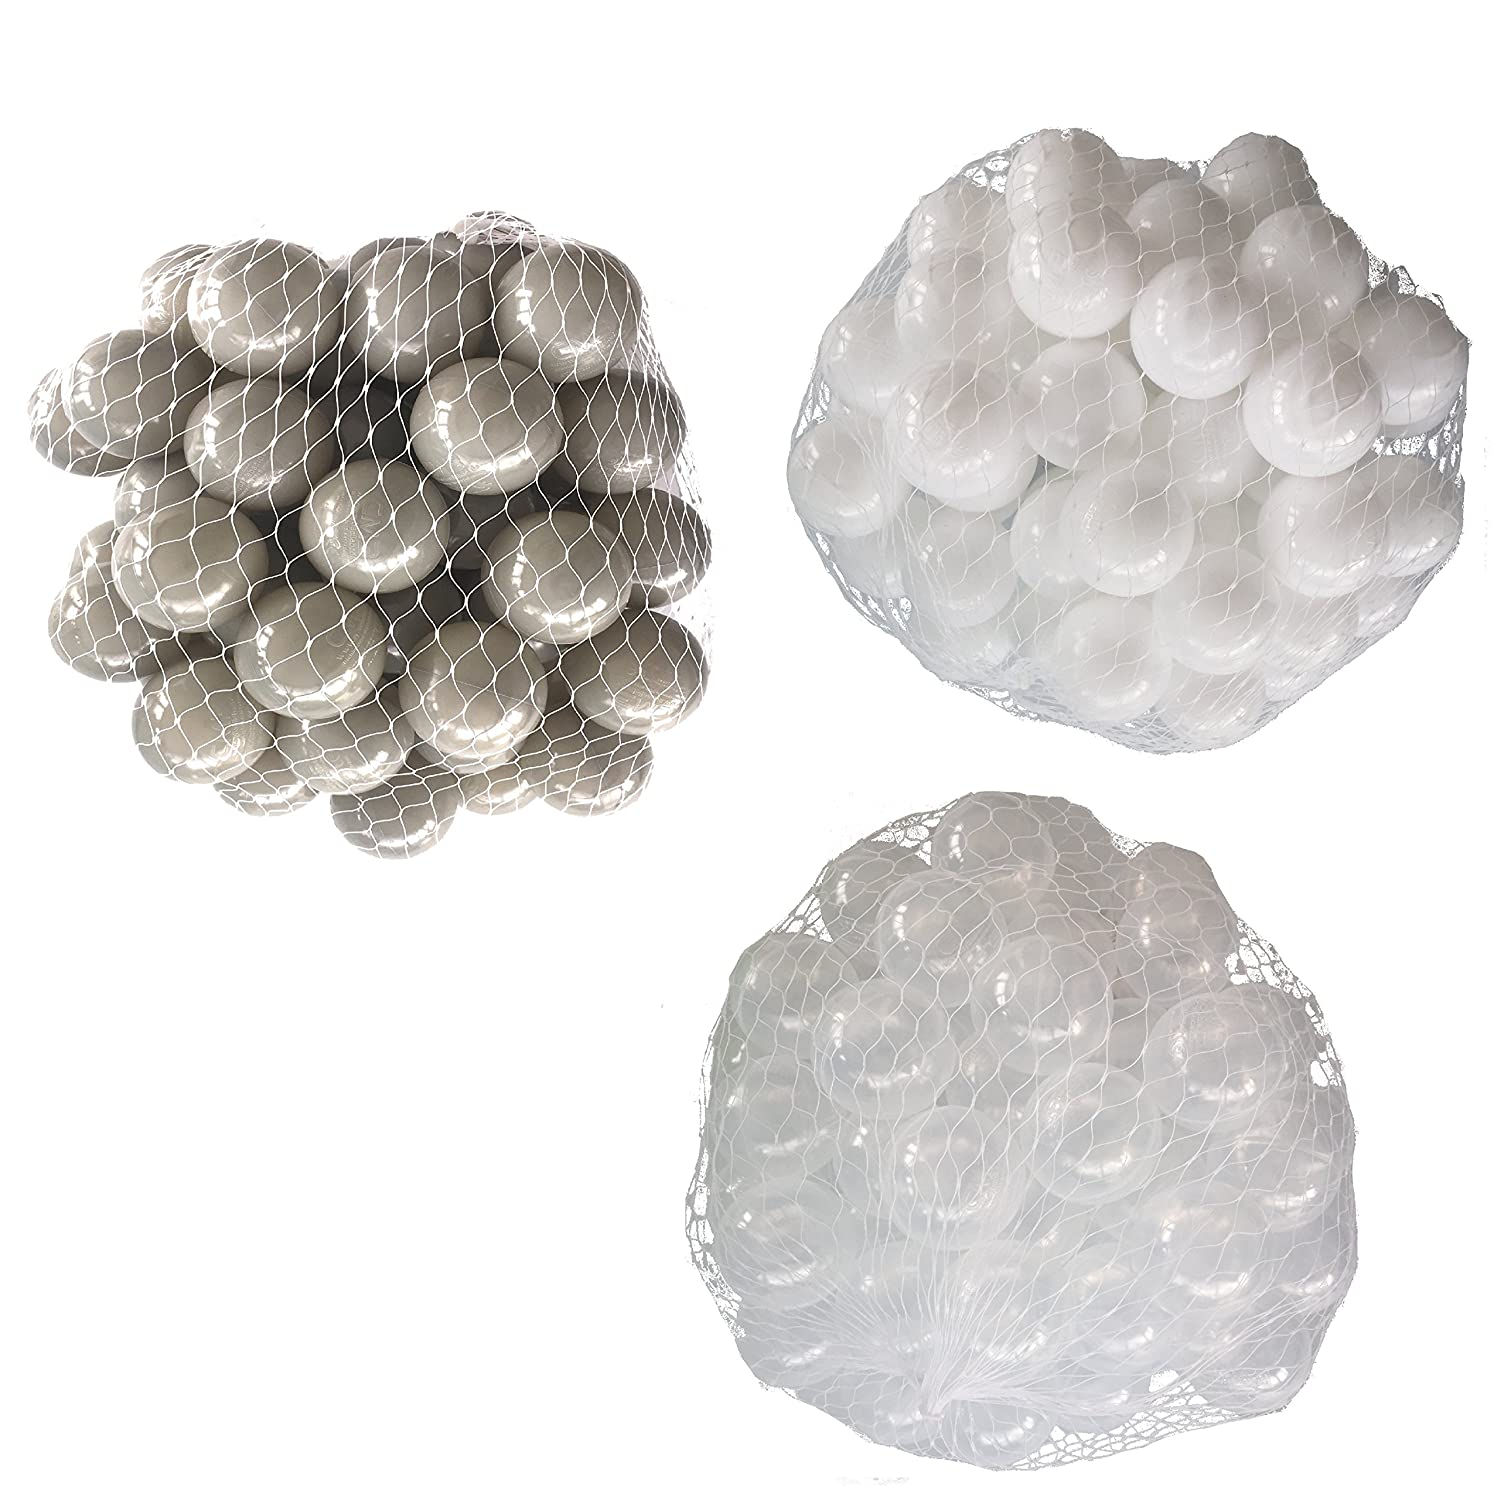 Balls for Ball Pool Mix Set with clear, white and grey. mybällebad